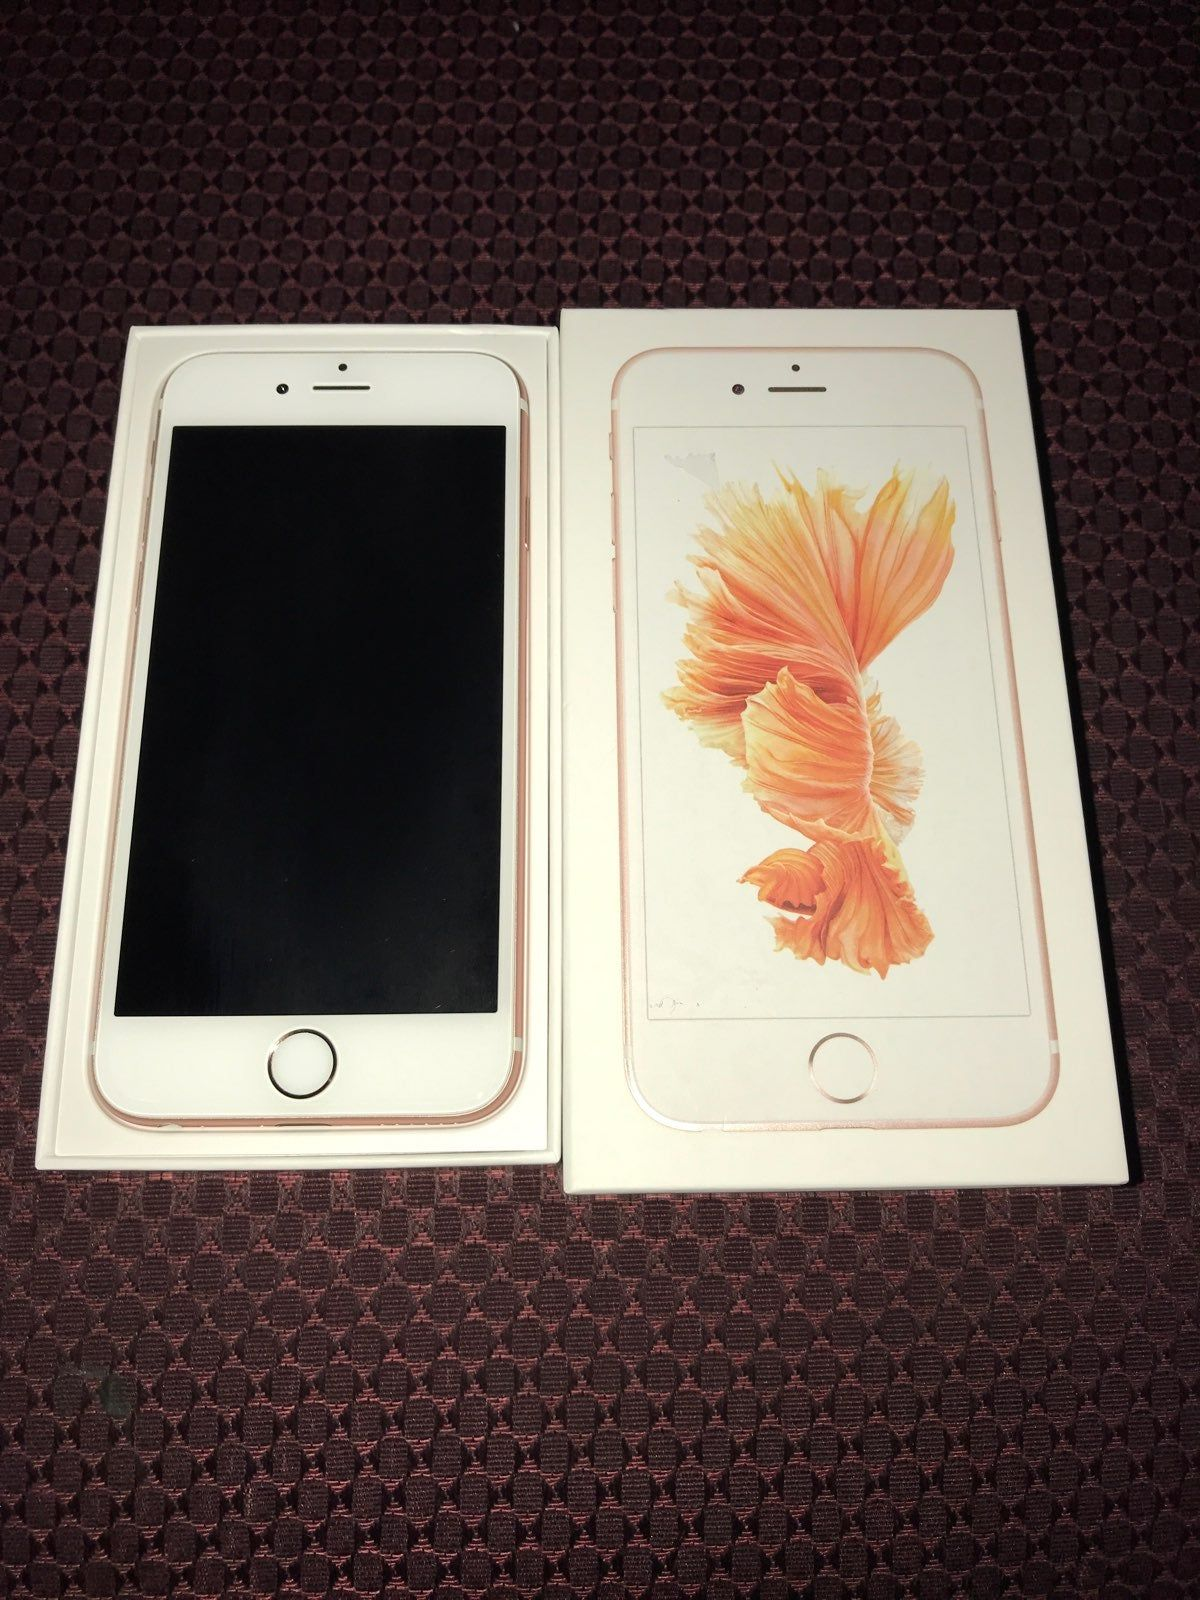 Rose Gold Iphone 6s 32 Gb This Phone Was Bought Brand New Only Ever Used With Metropcs Everything Else Should Be U Iphone Rose Gold Iphone Iphone 6s Rose Gold